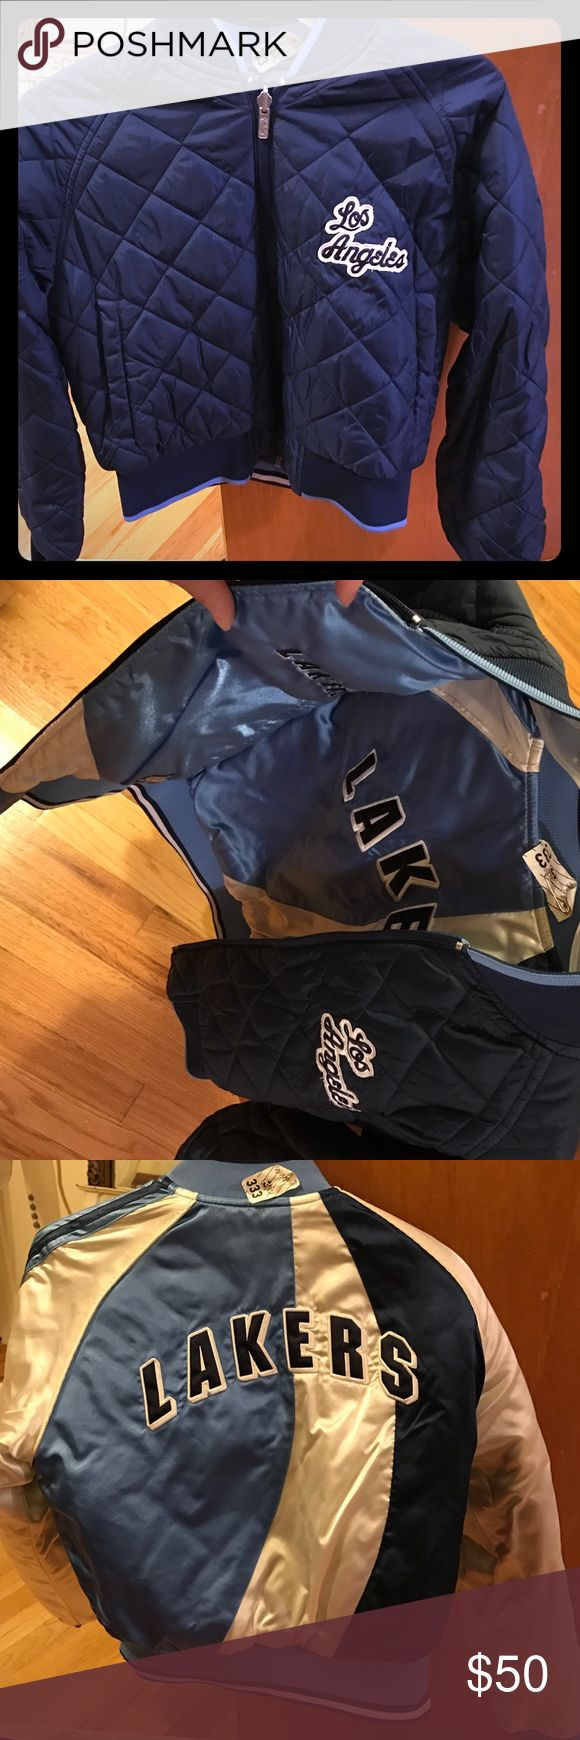 Los Angeles Lakers jacket Trendy bomber jacket with LA LAKERS in shades of blue. Perfect condition. Beautiful jacket. Still has dry clean ticket attached. Wore a couple times. Jackets & Coats